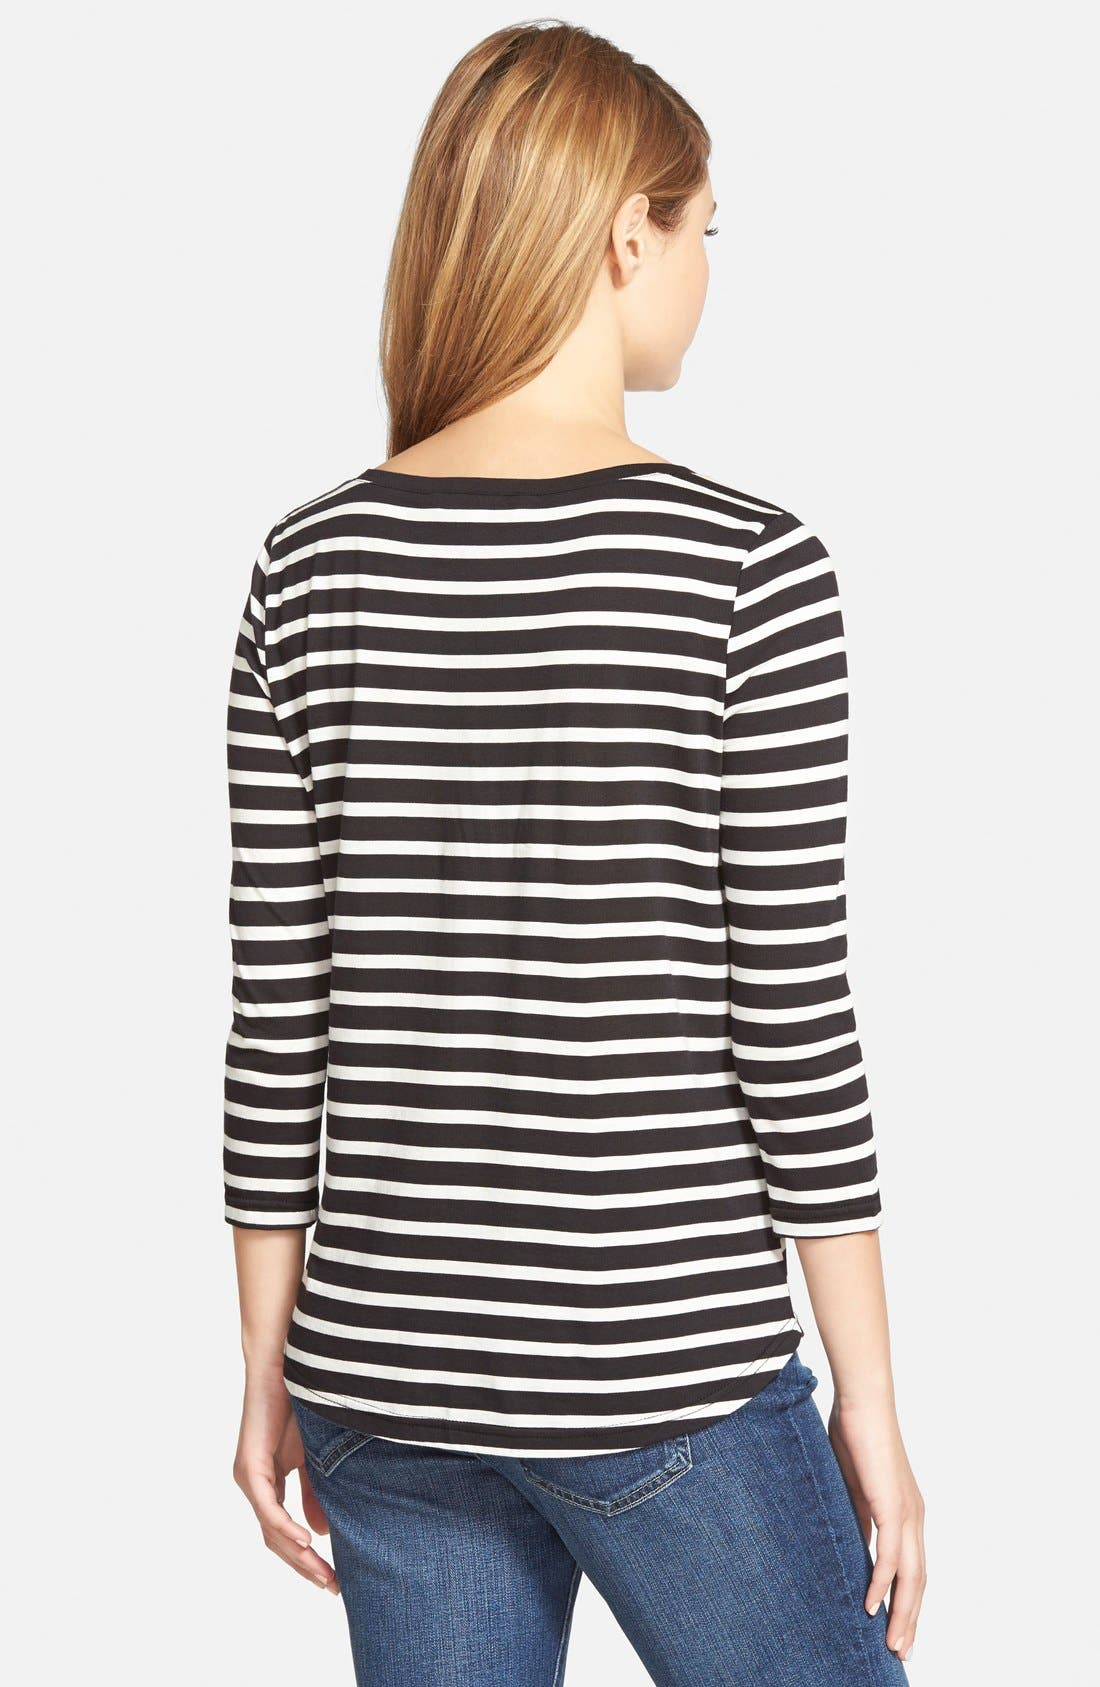 'Mendocino' Stripe Top,                             Alternate thumbnail 3, color,                             001